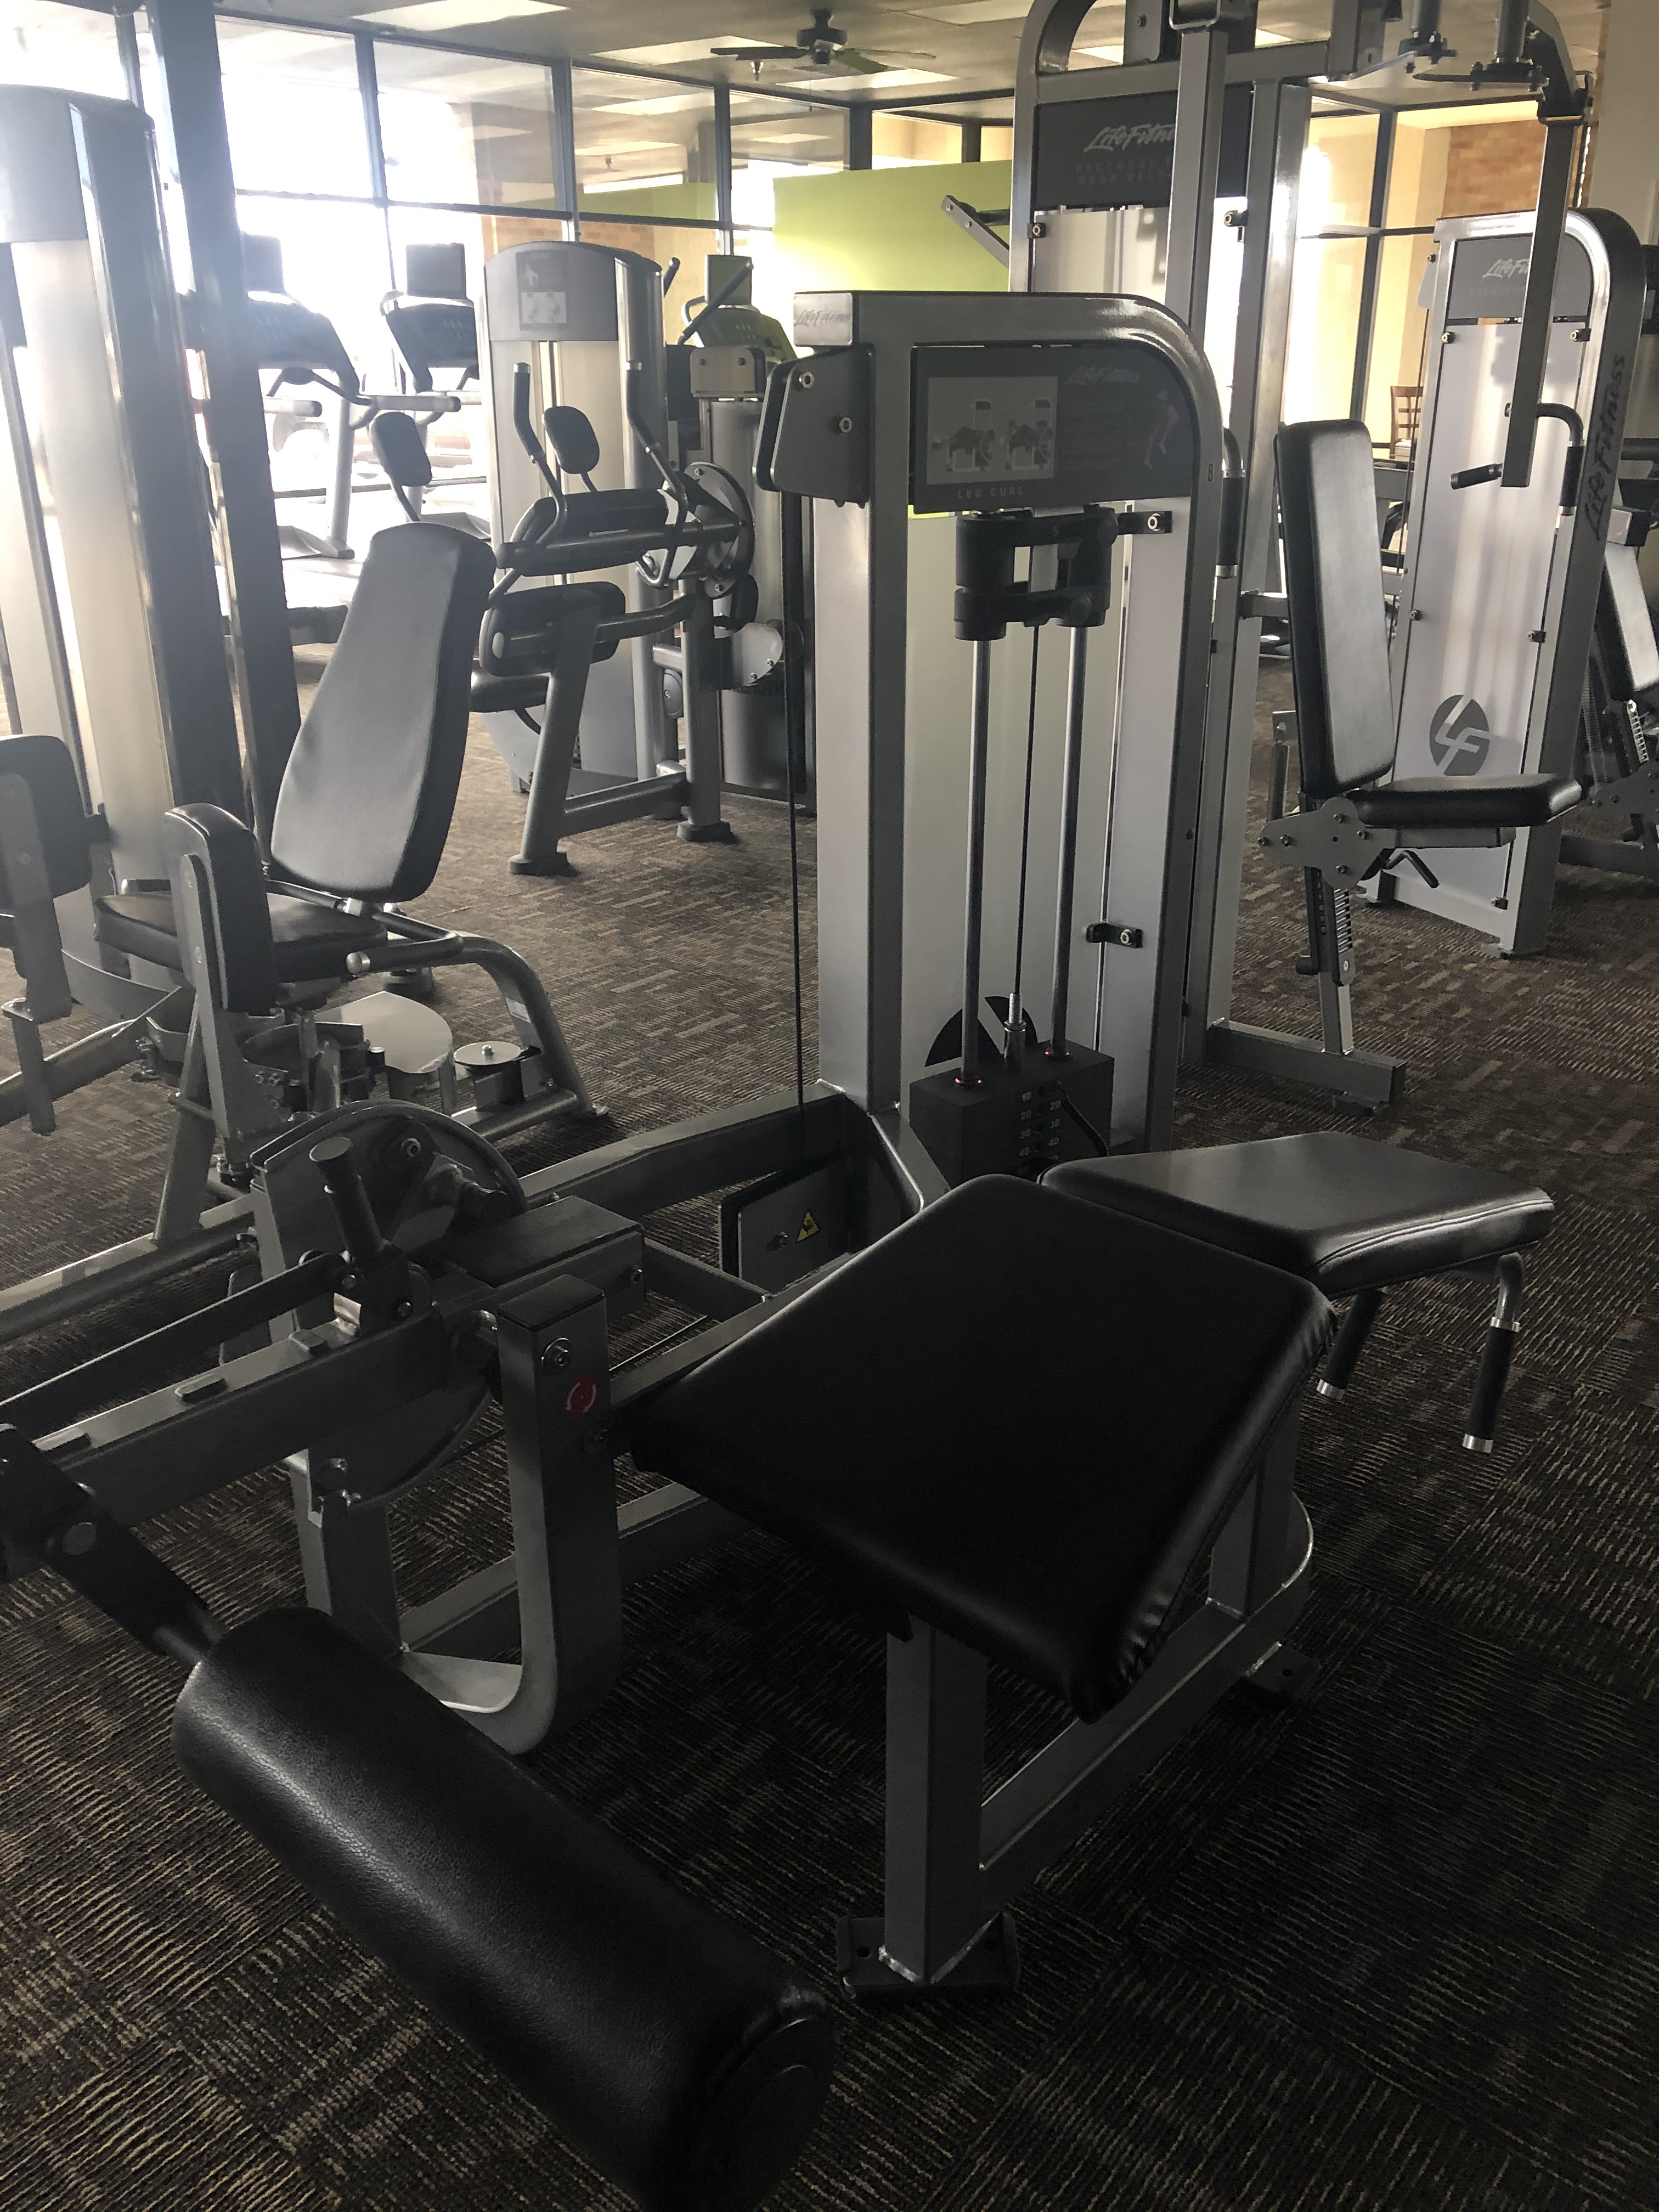 Absolute Auction | Anytime Fitness Center Equipment | Saturday, June 27th @ 11:00 am EDT